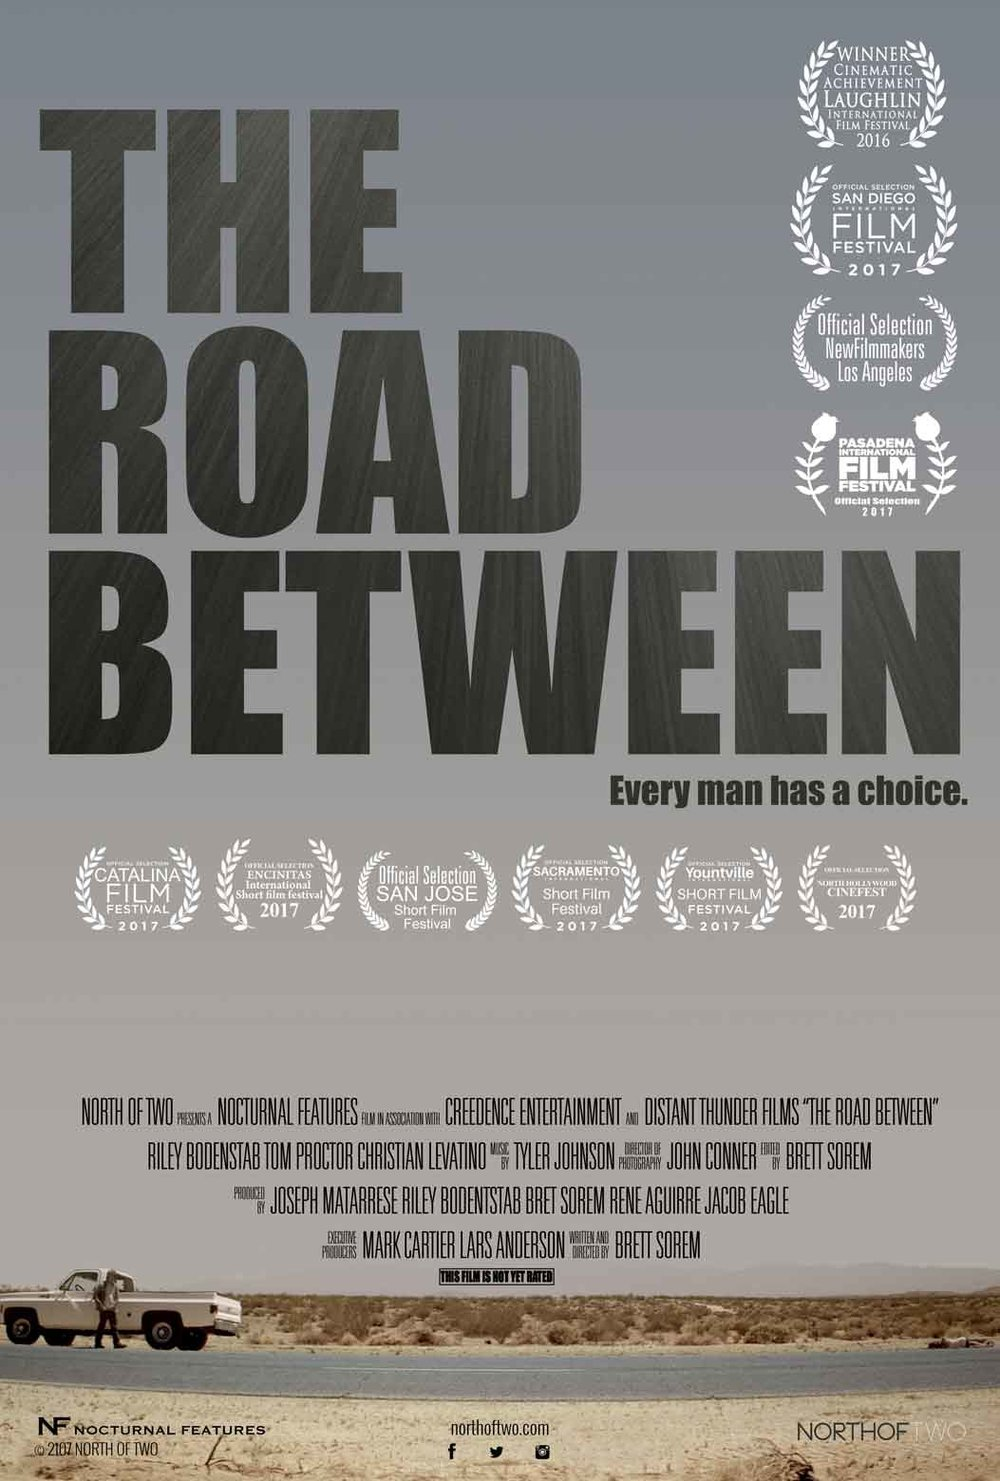 Road-Between-POSTER-Web_low.jpg